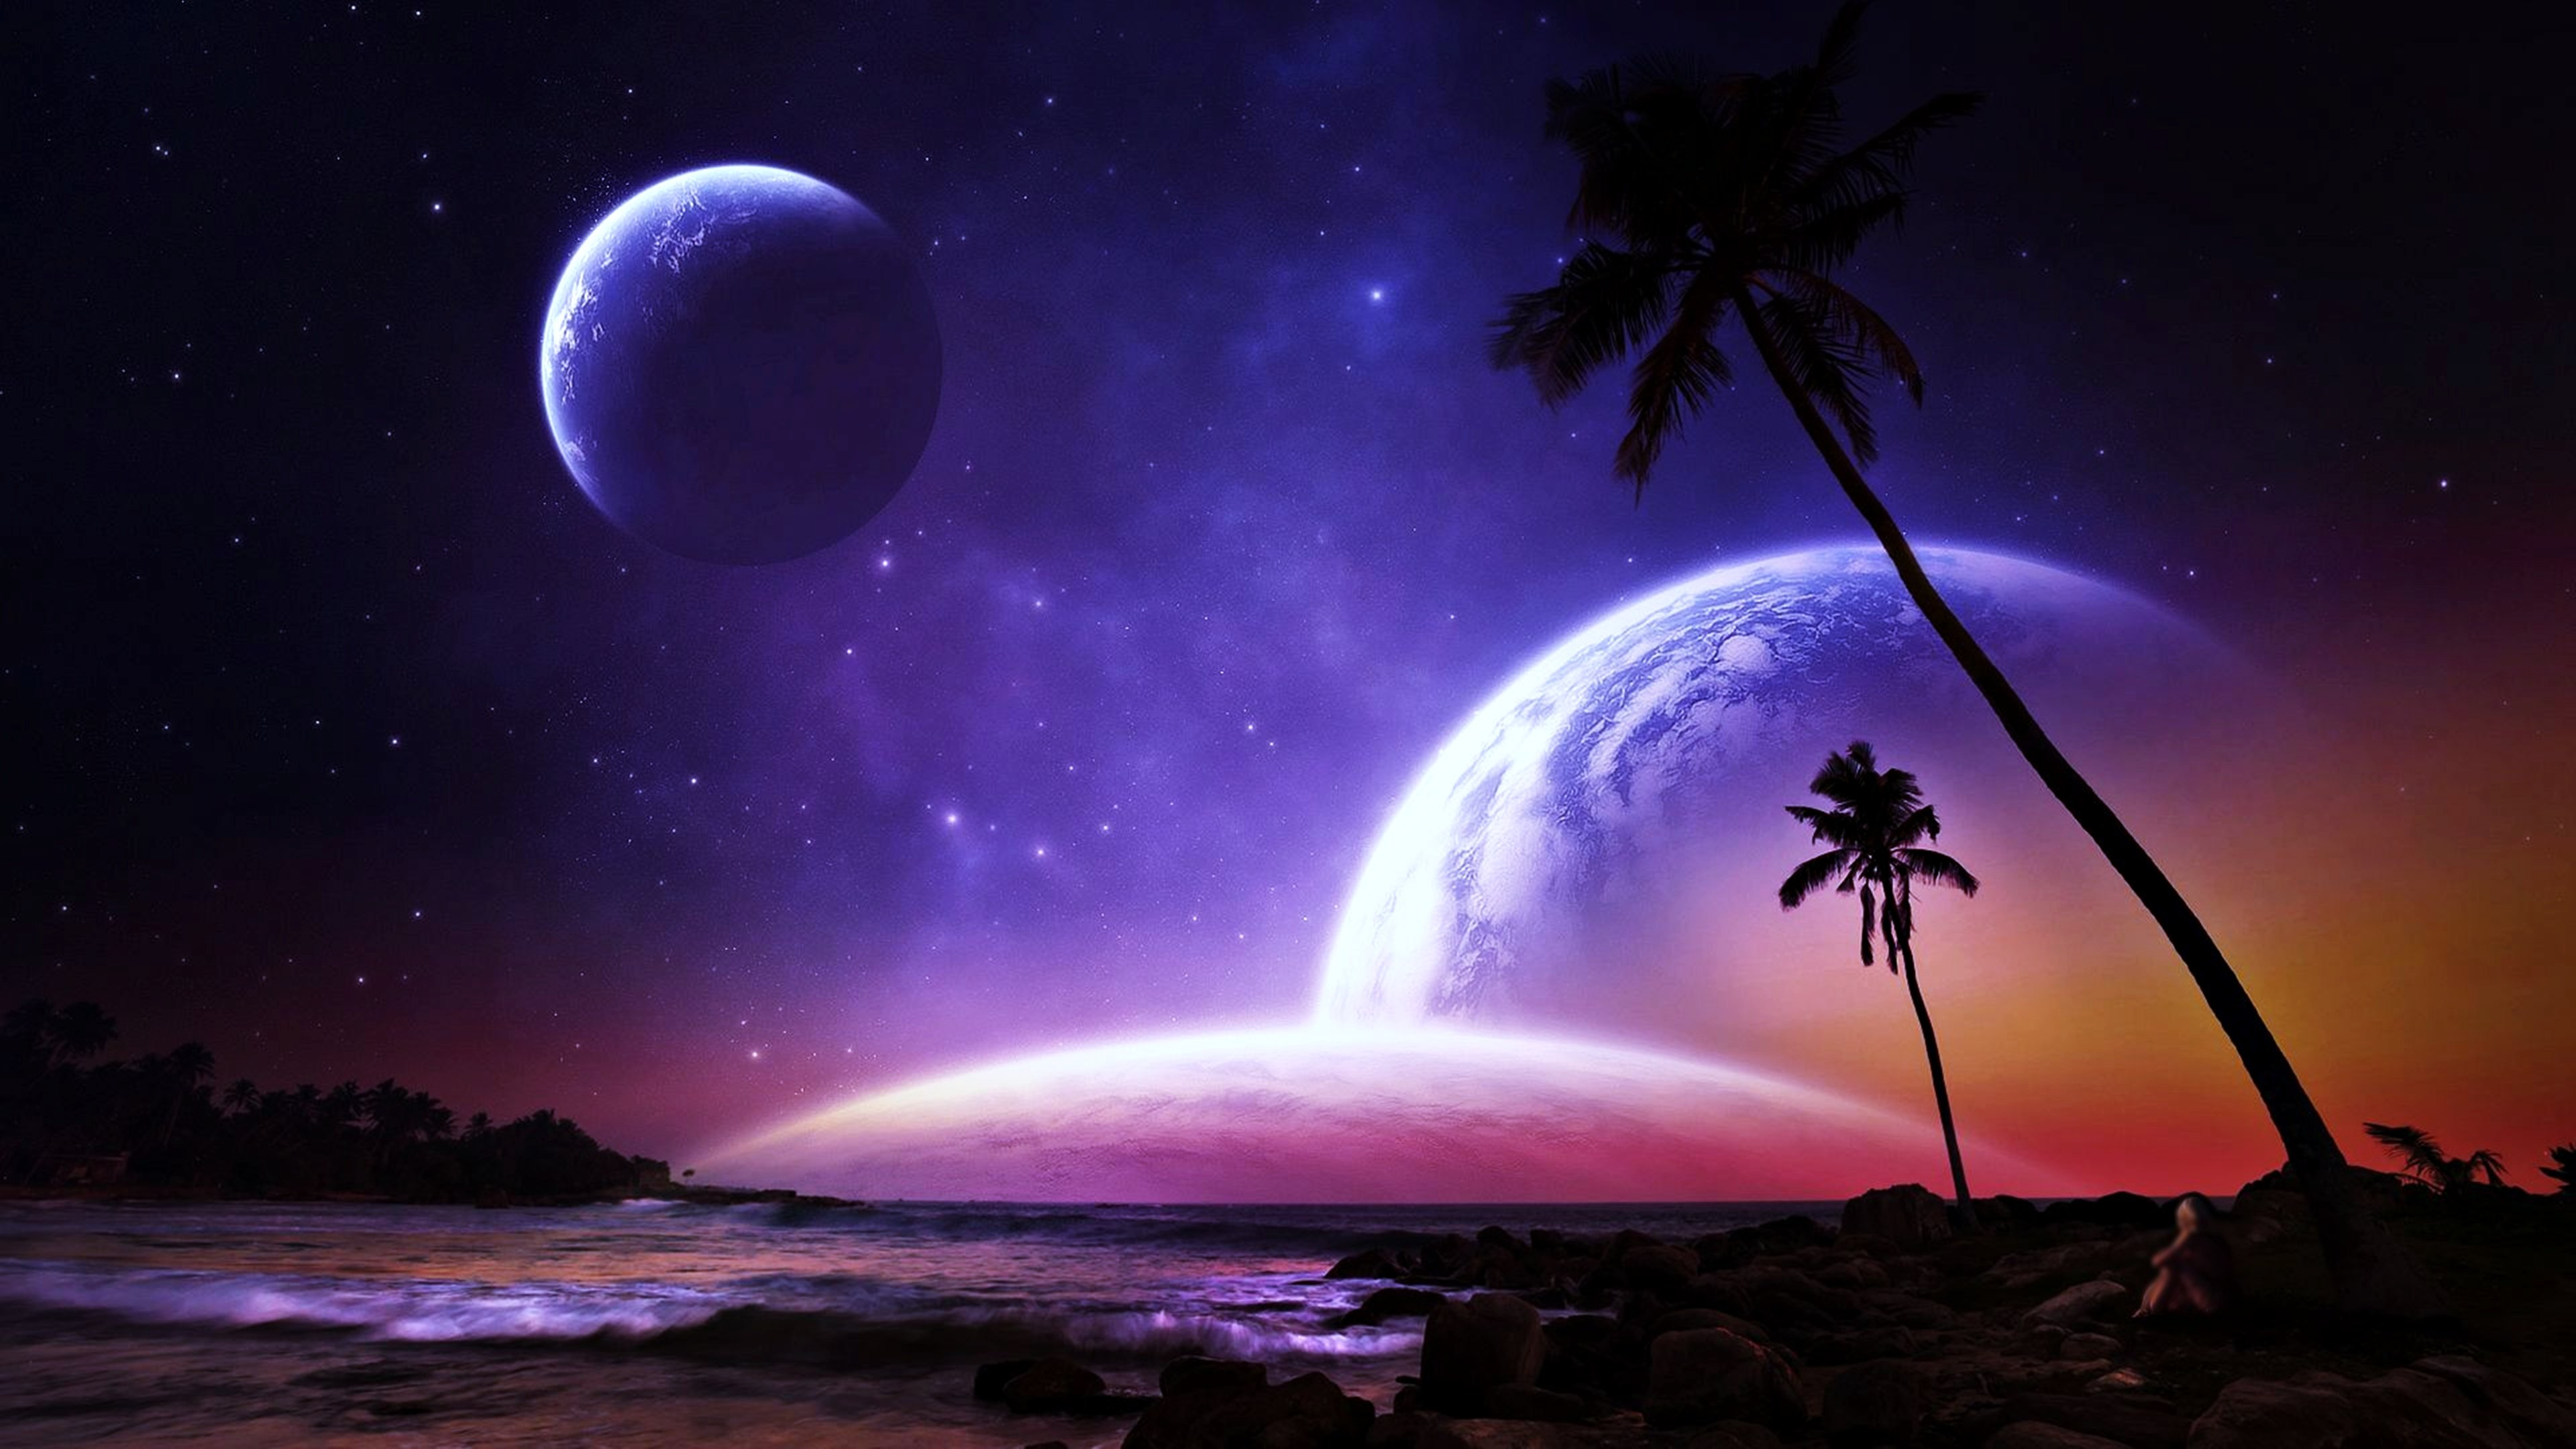 planets palms fantasy dreams colorful beaches space stars galaxy